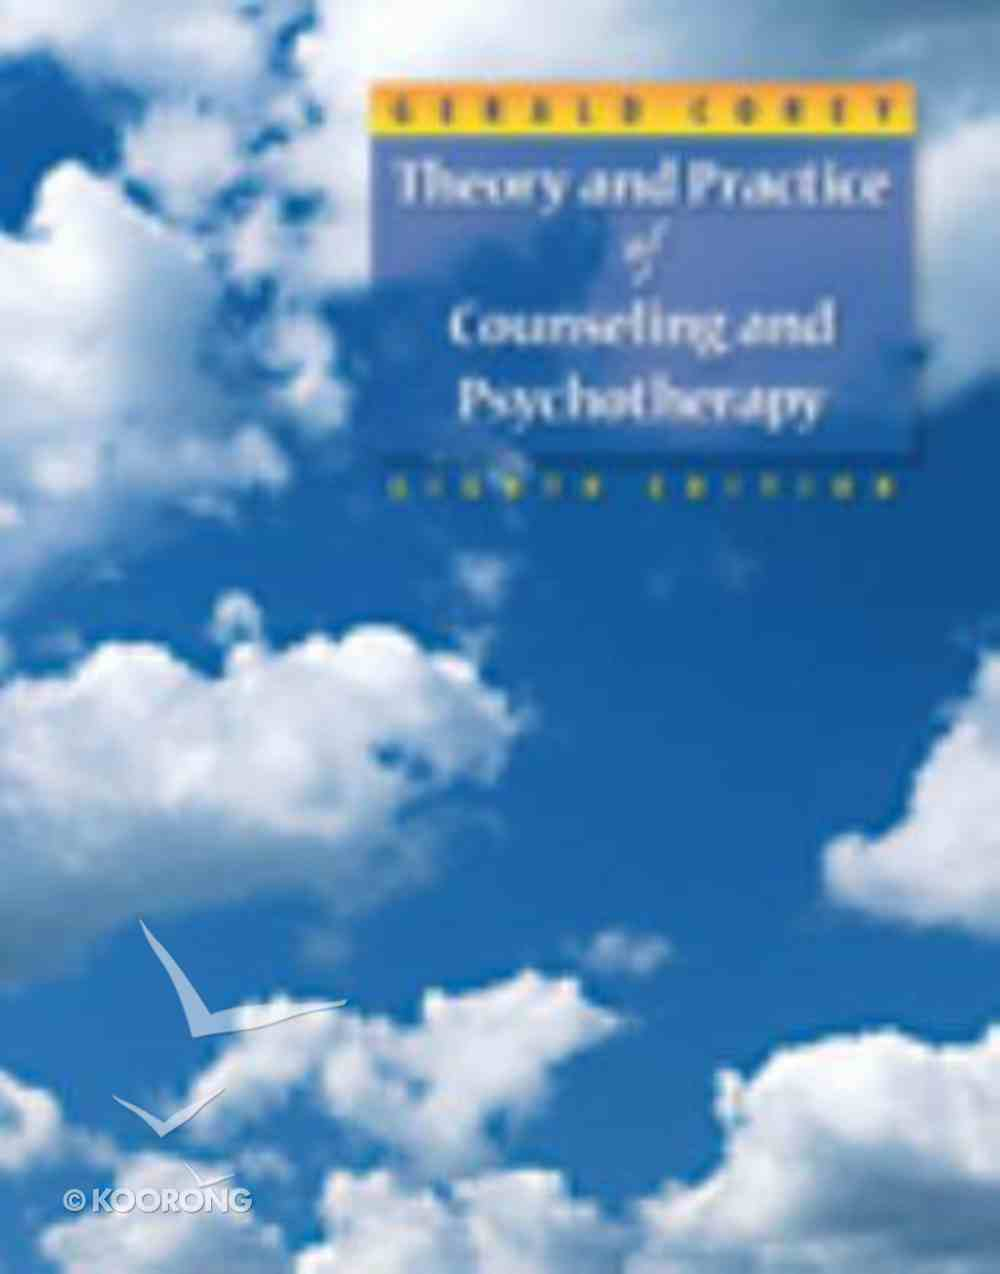 Theory and Practice of Counseling and Psychotherapy (8th Edition) Hardback